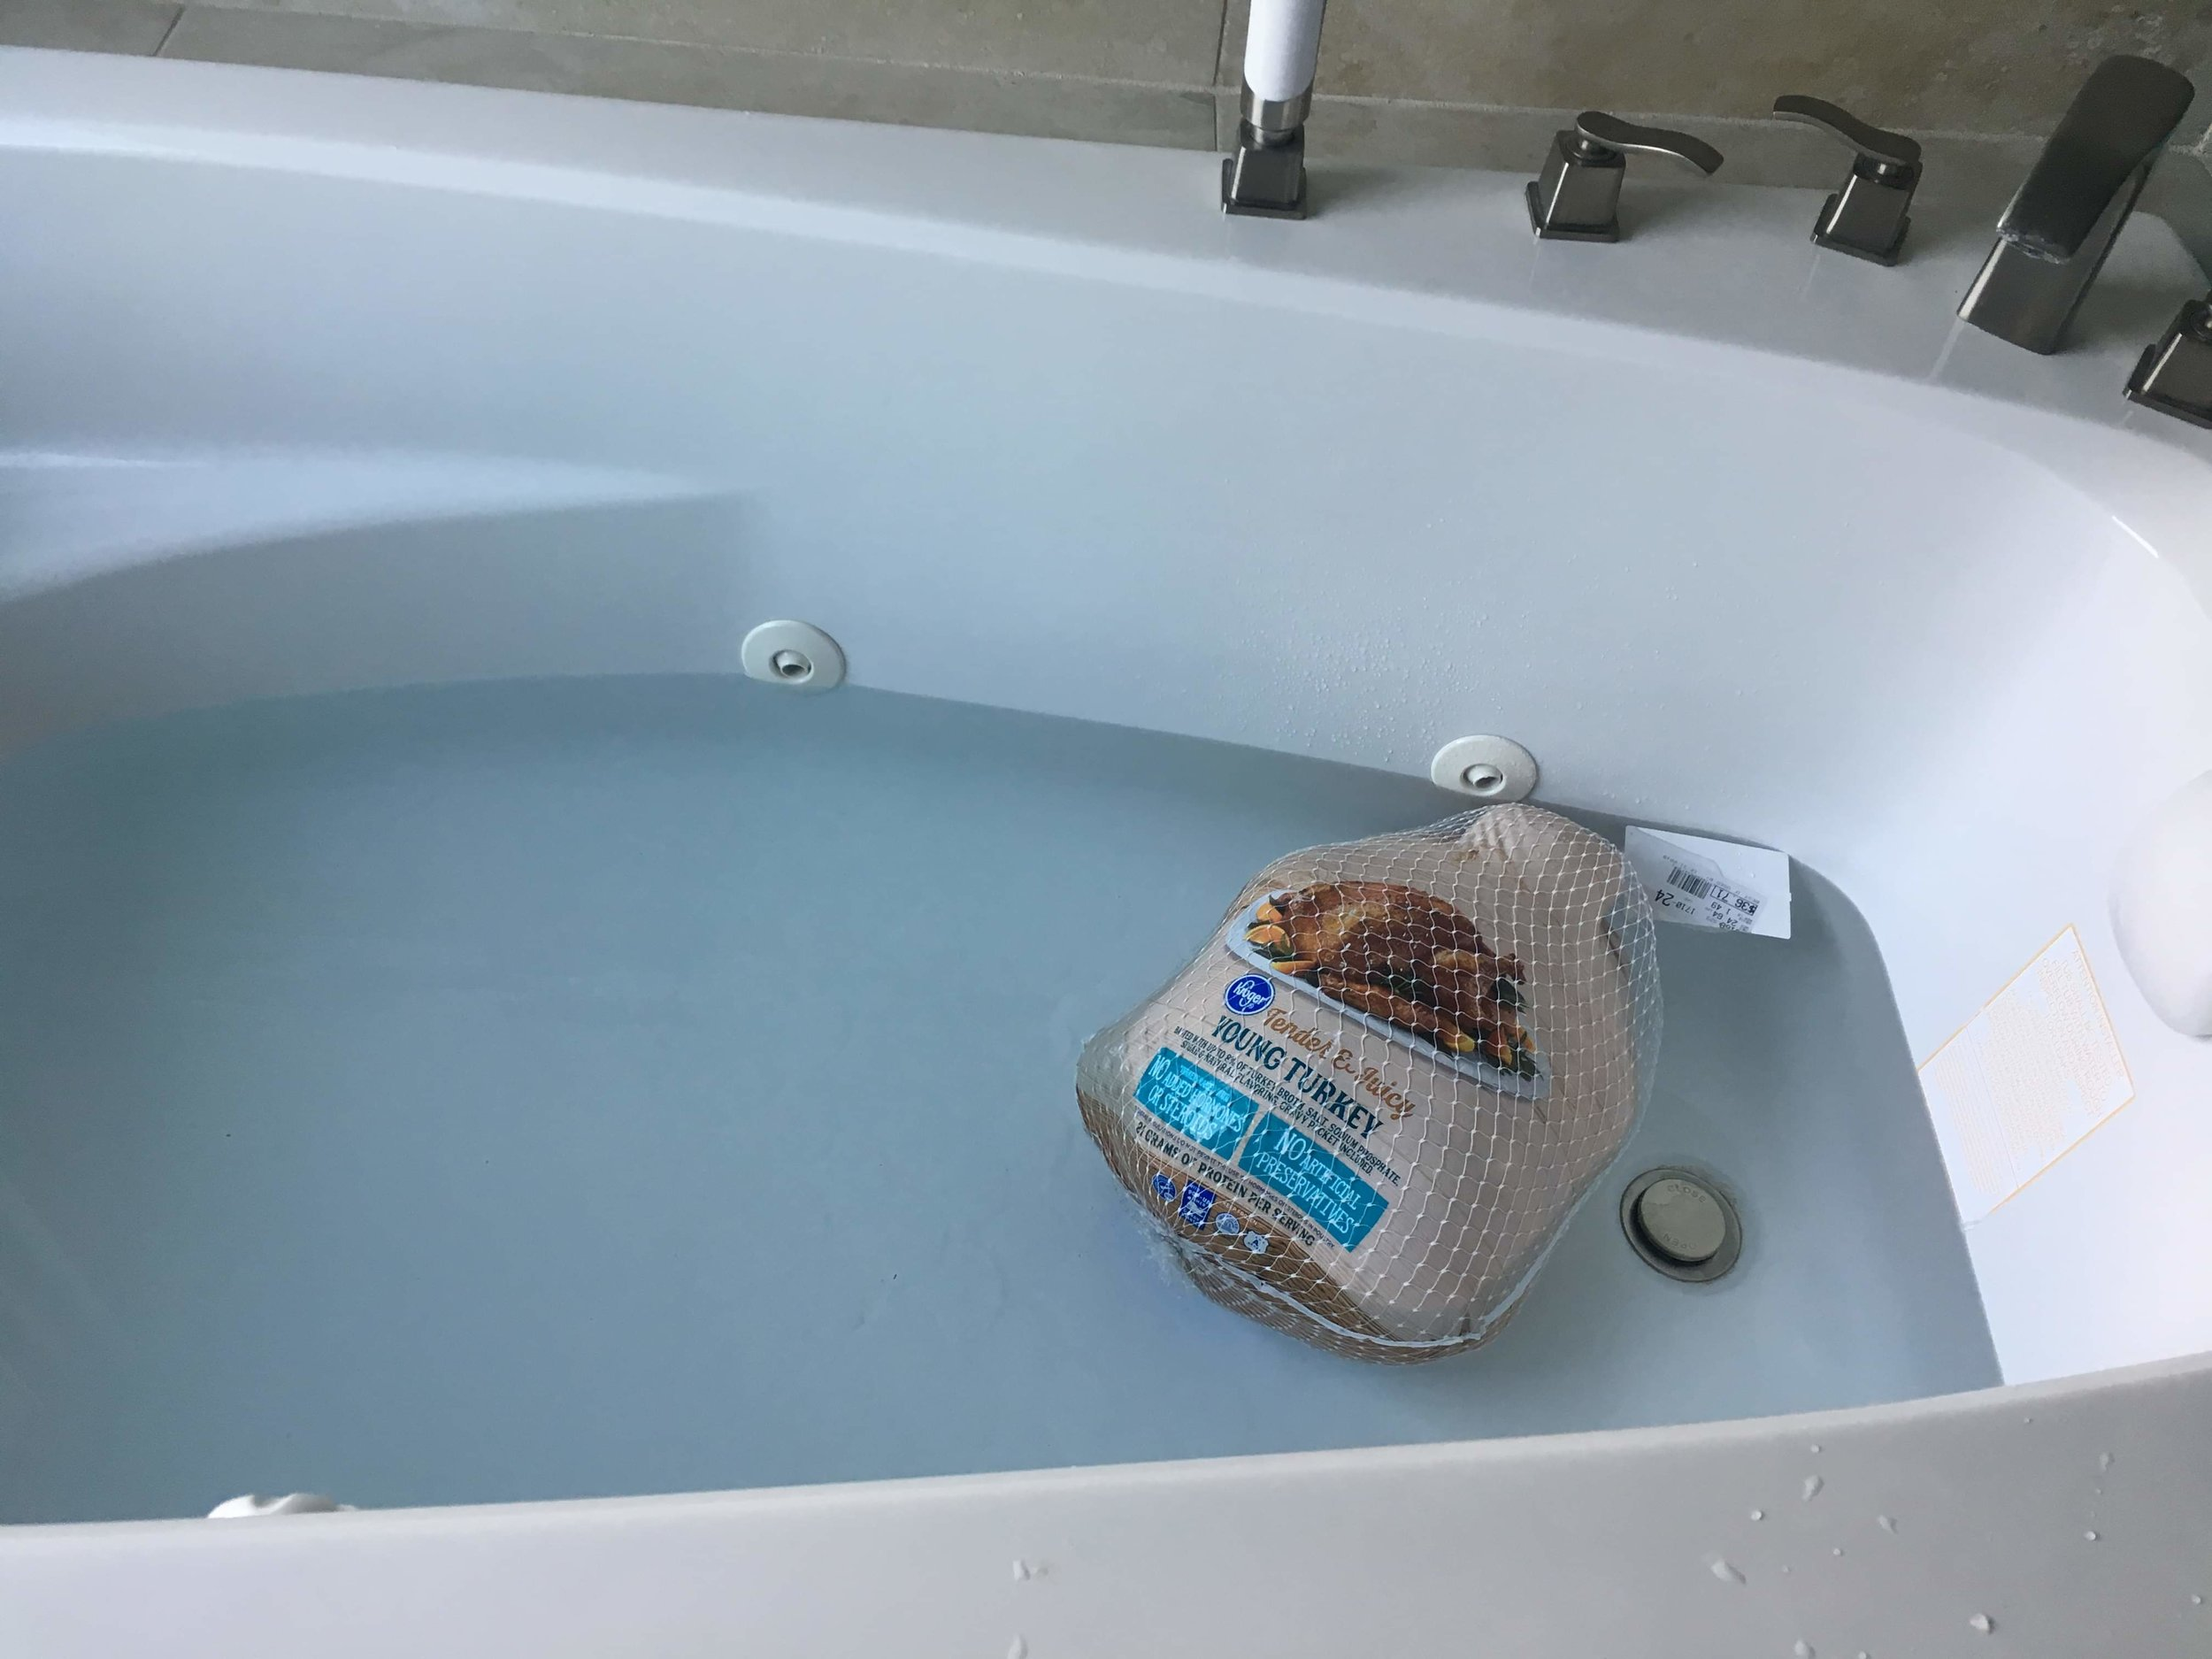 The bird made it to our new Jacuzzi tub before we did!